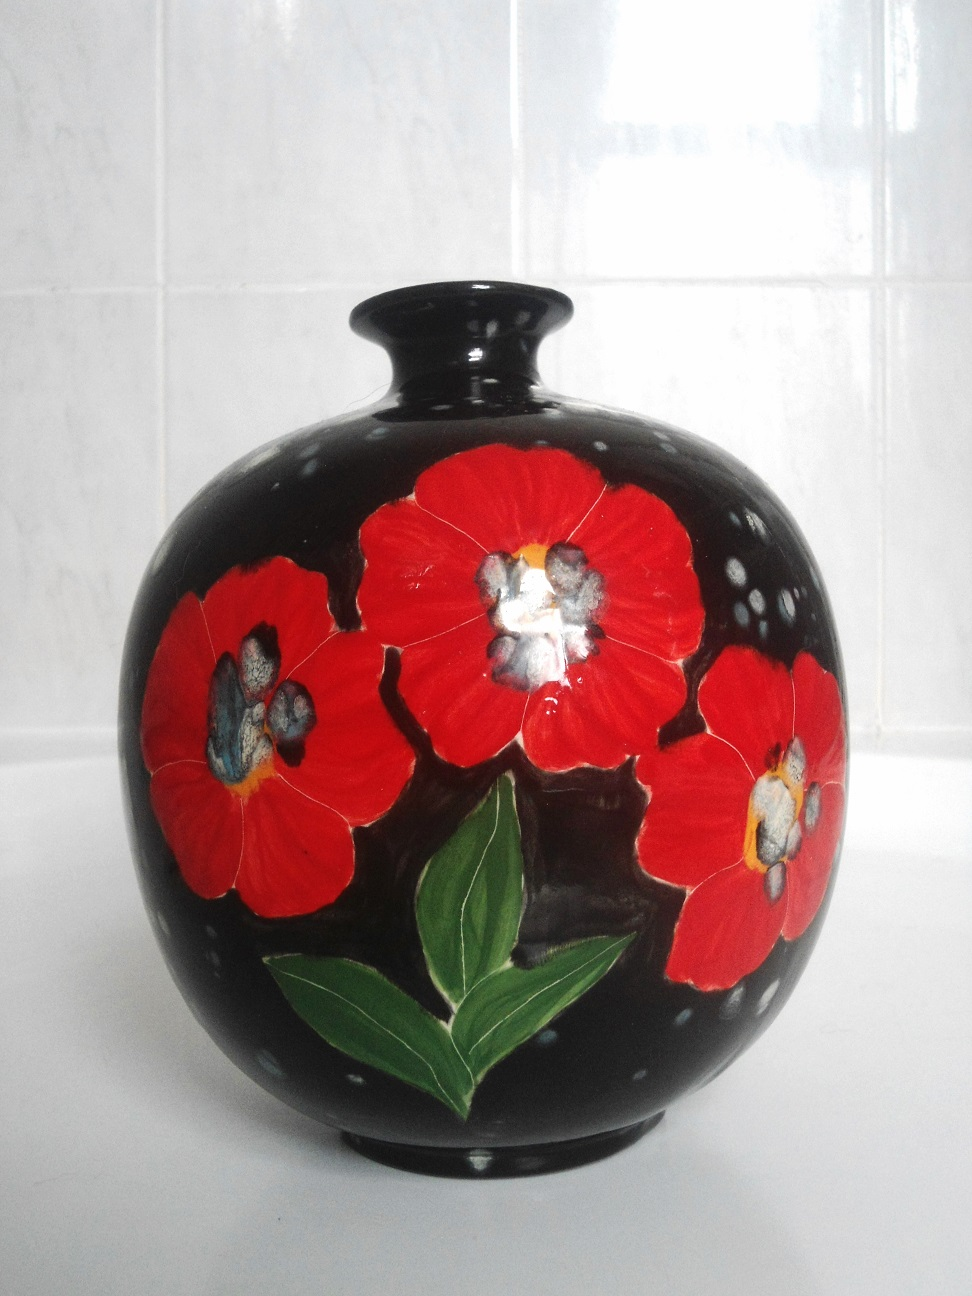 help with poppy vase signed smy 2005 Aviary12